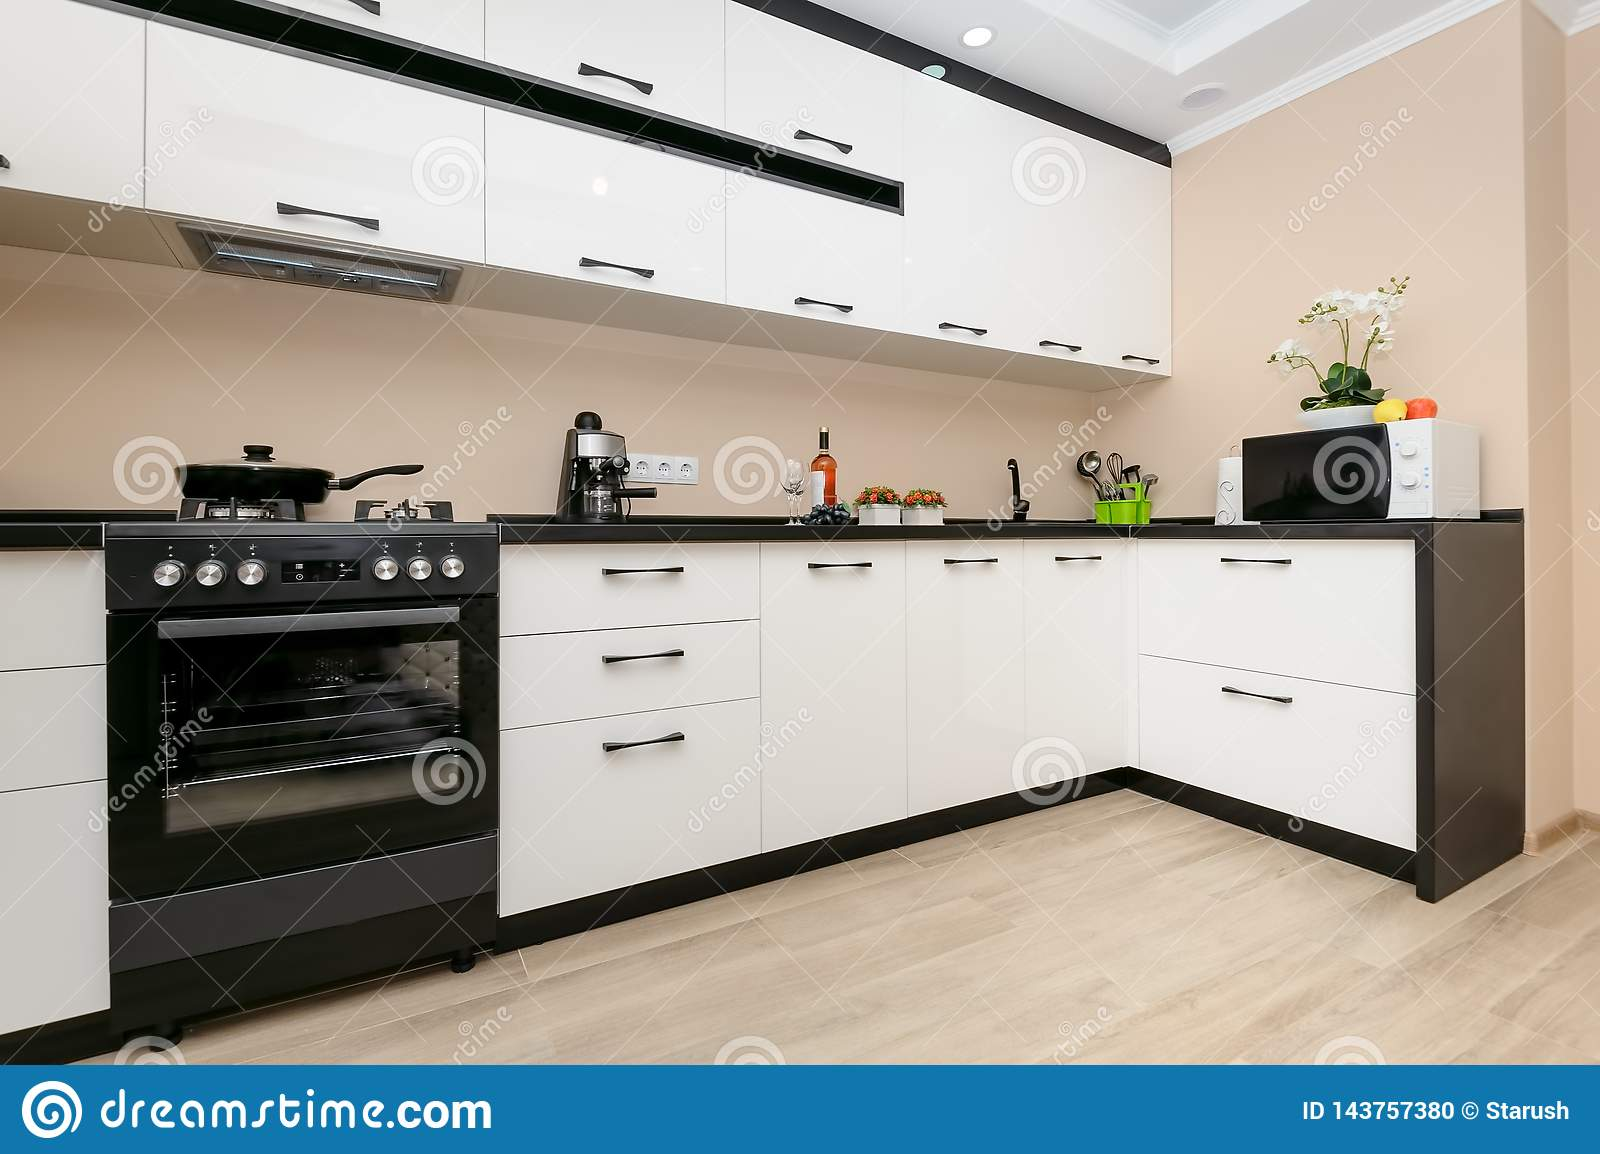 Modern Black And White Kitchen Stock Photo Image Of Cabinet Kitchenware 143757380